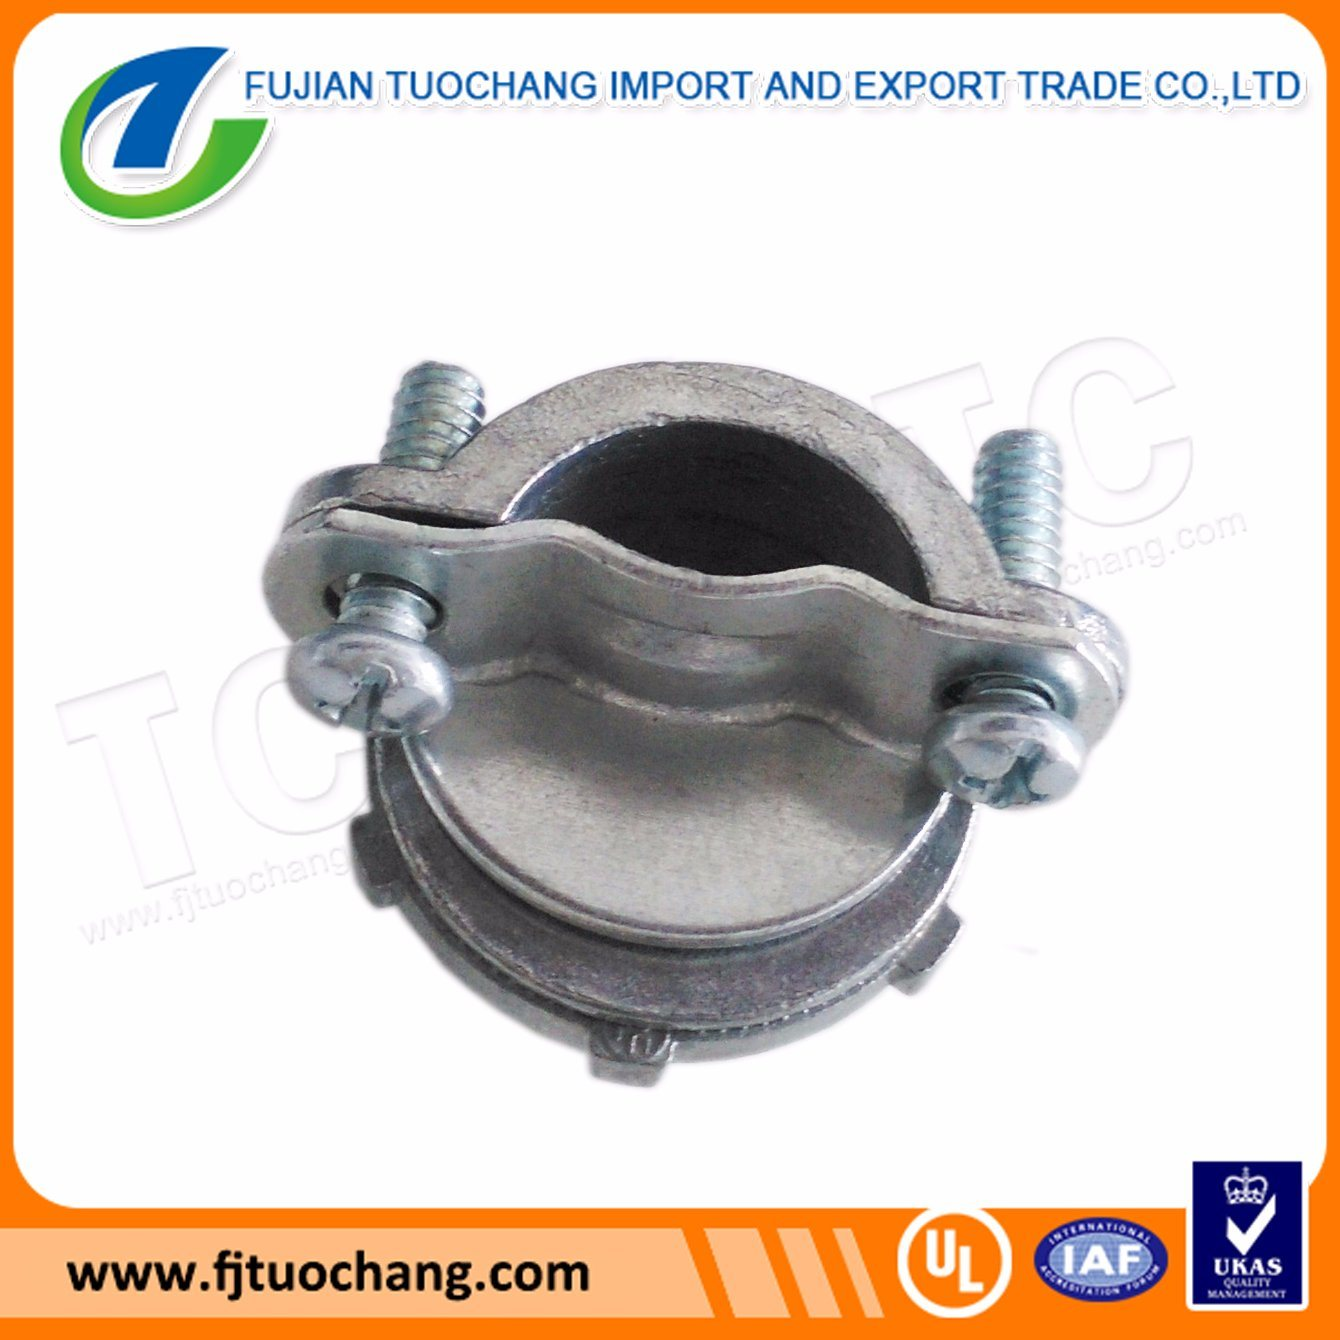 China Zinc Die-Casting Nm Clamp Type Romex Cable Clamp Photos ...